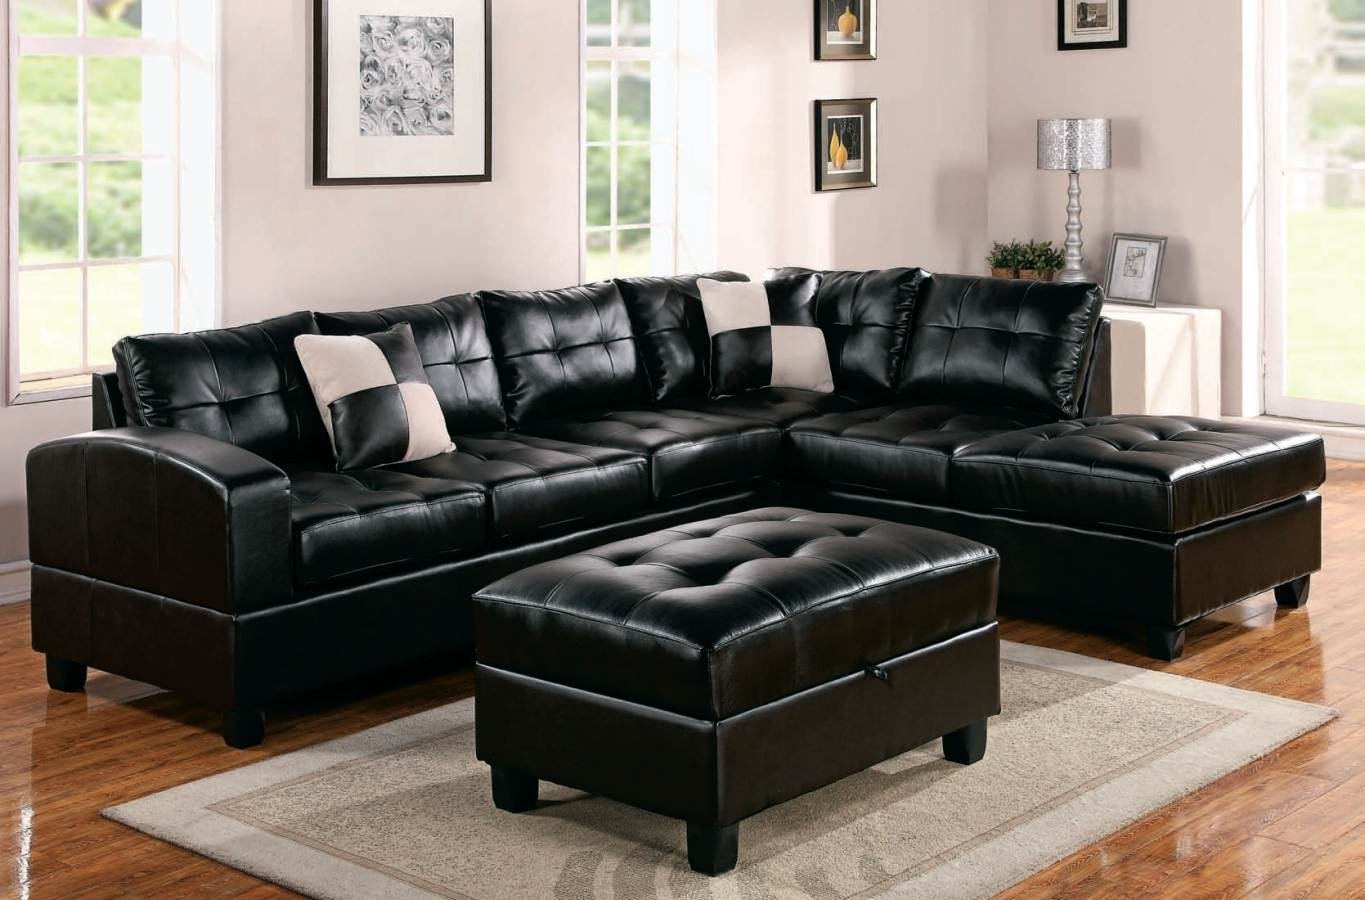 Sectional Sofa Deals | Homesfeed Inside Black Leather Sectionals With Ottoman (Image 7 of 10)